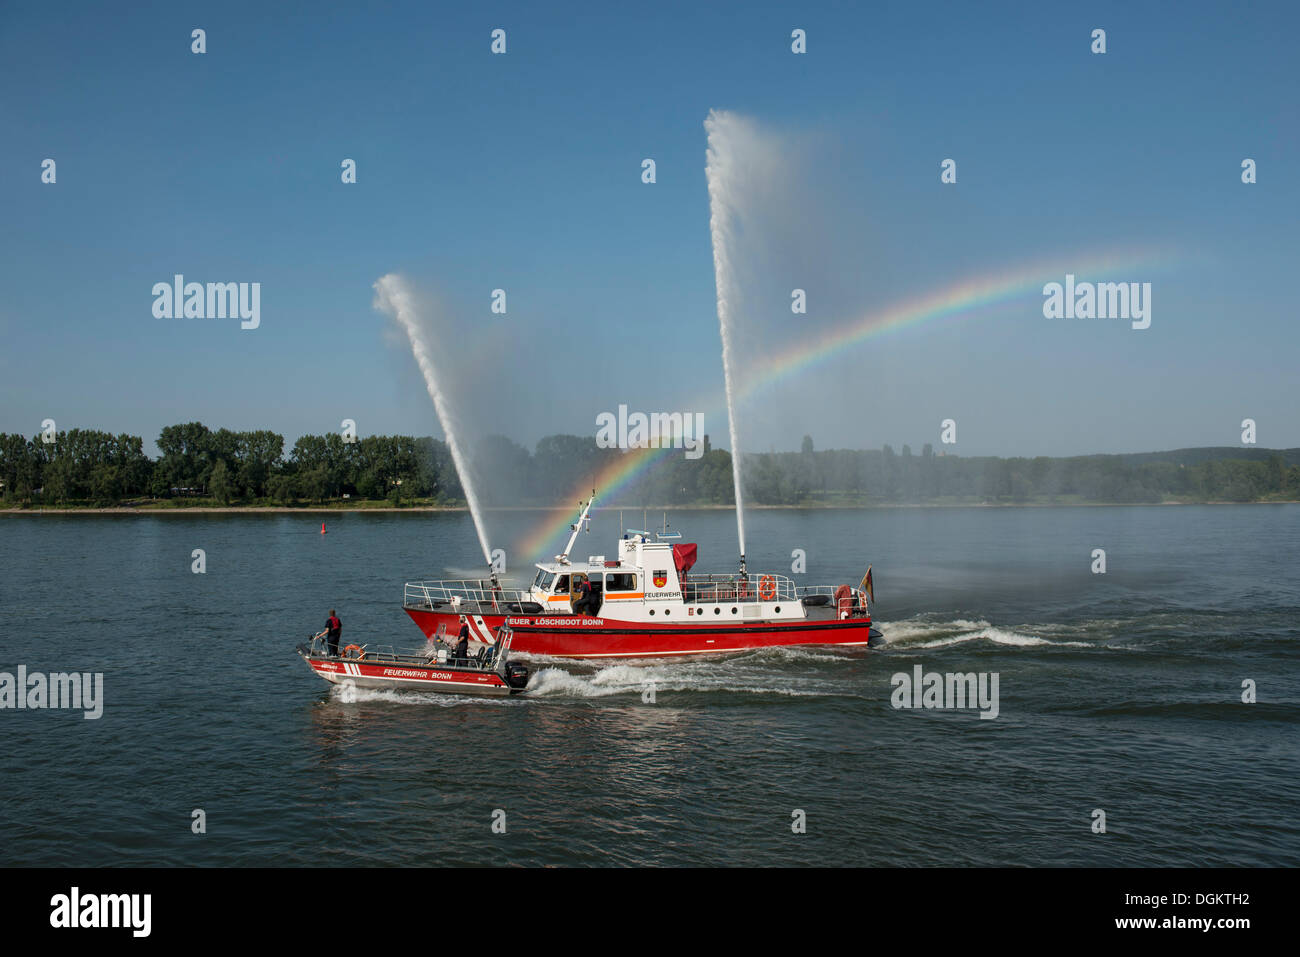 Fire drill of the Bonn fire brigade, a fire fighting boat with 3 fountains, accompanied by a smaller fire fighting boat, Bonn - Stock Image